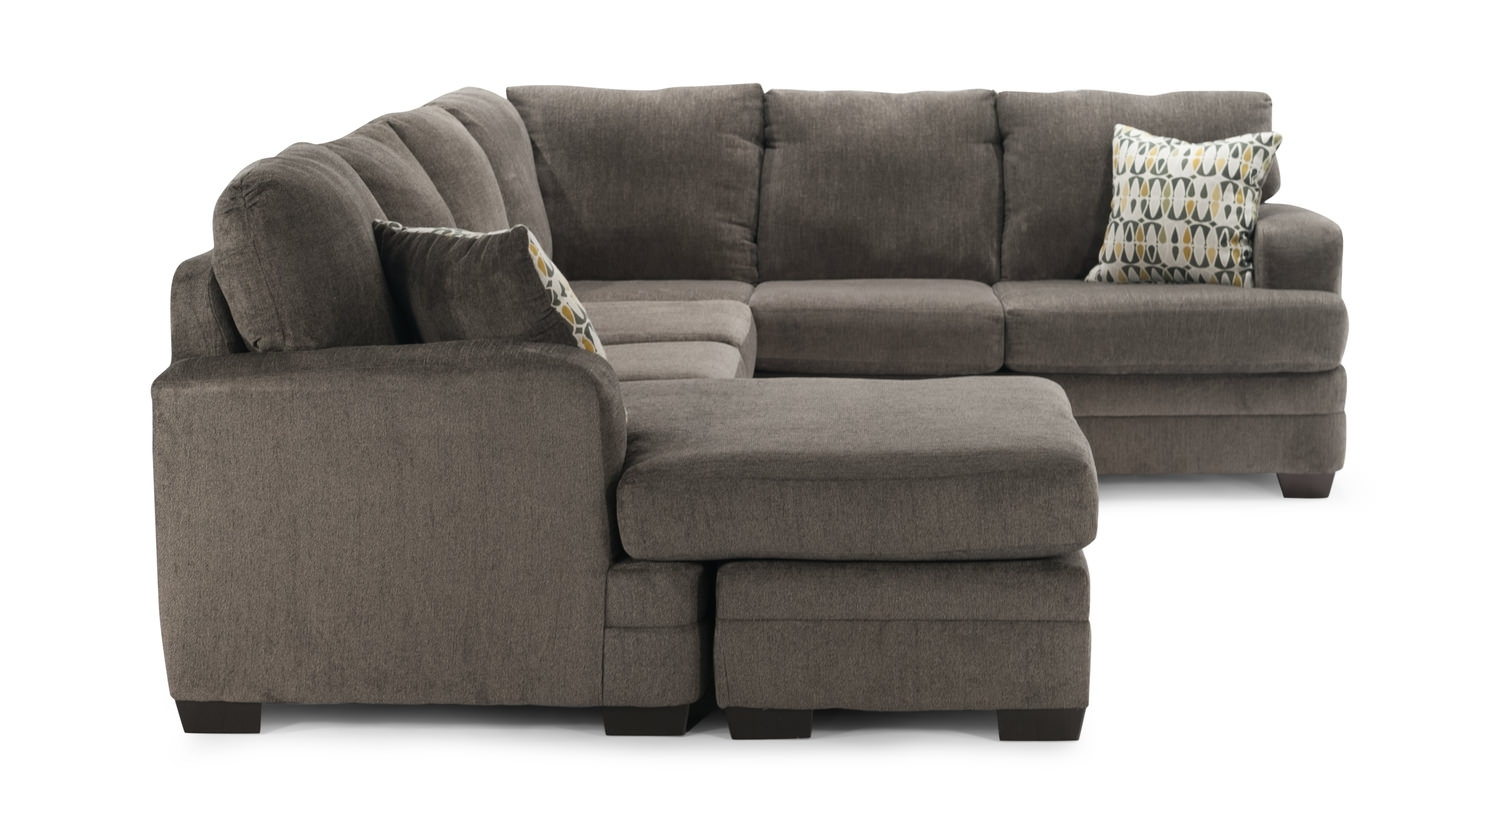 Galena 2 Piece Sectional | Dock86 Within Dock 86 Sectional Sofas (View 10 of 10)